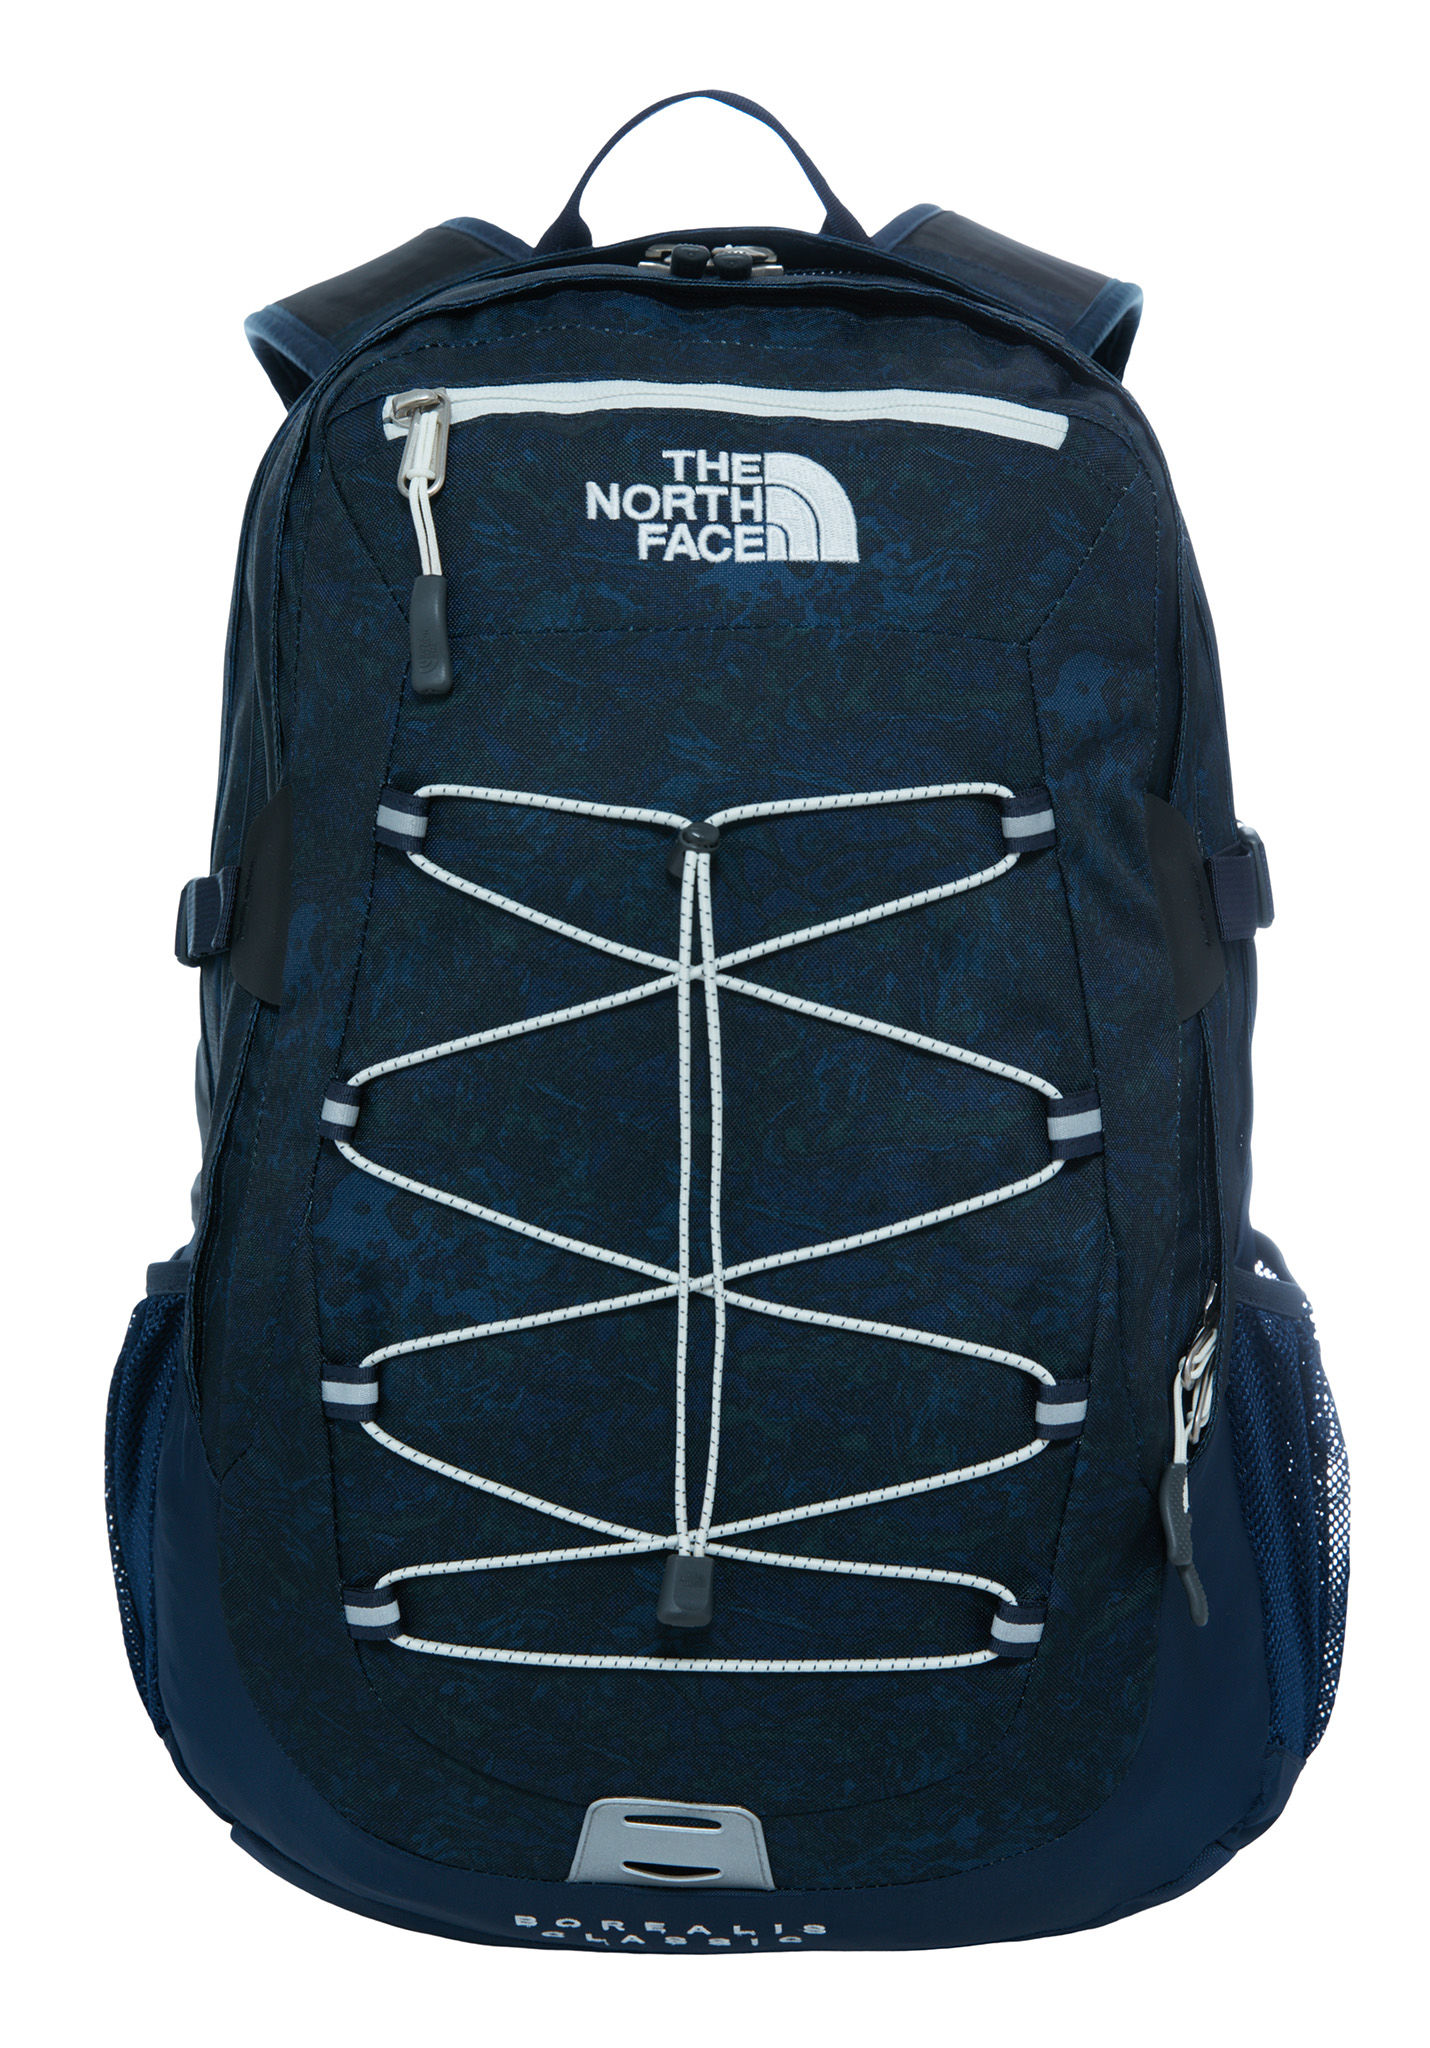 THE NORTH FACE Borealis 28L - Backpack - Blue - Planet Sports 472b38937640